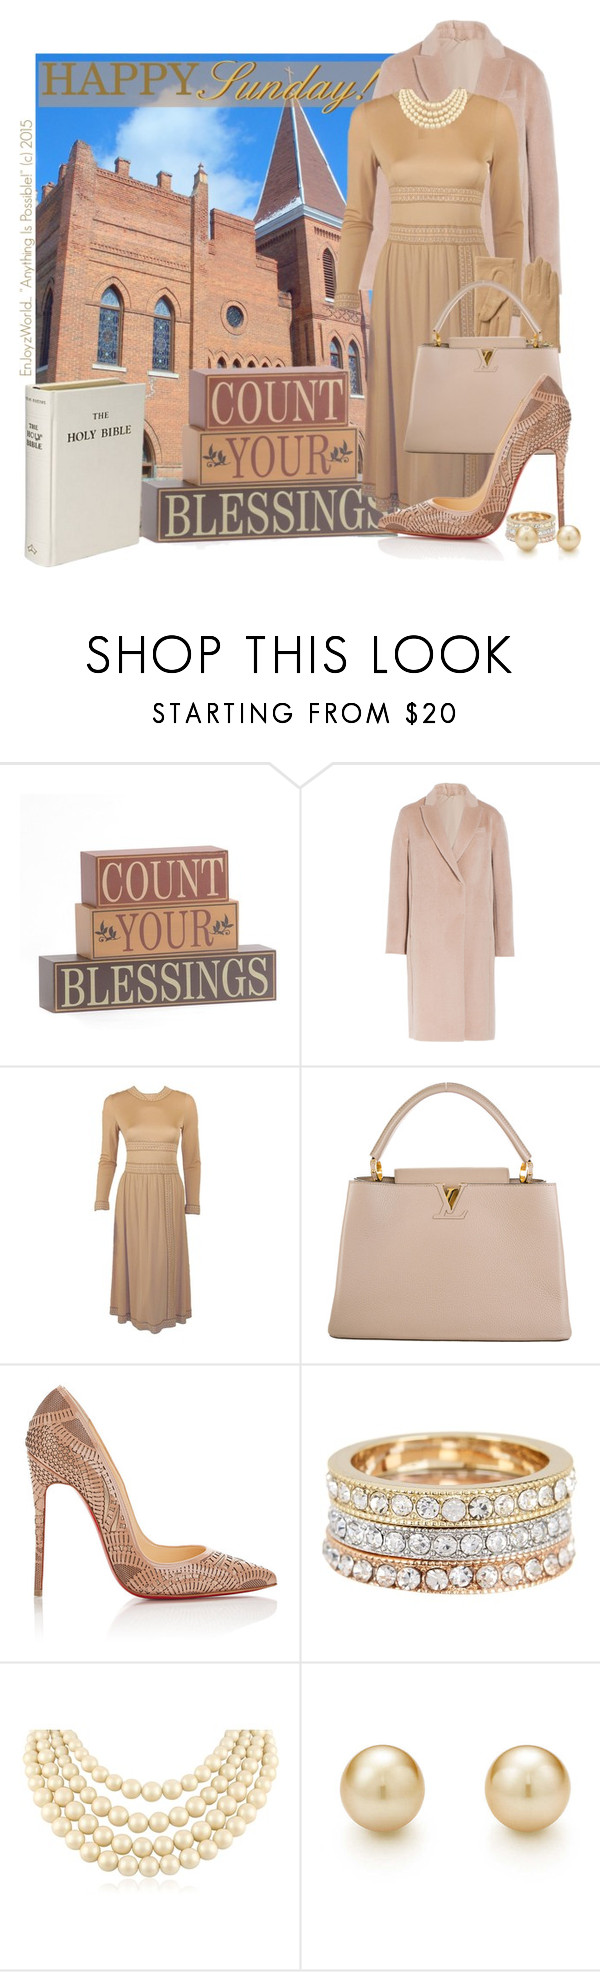 """HAPPY SUNDAY!!!: ""Count Your Blessings!"""" by enjoyzworld ❤ liked on Polyvore featuring DEPT, Brunello Cucinelli, Averardo Bessi, Echo, Louis Vuitton, Christian Louboutin, Ariella Collection, Carolee, Tiffany & Co. and neutrals"